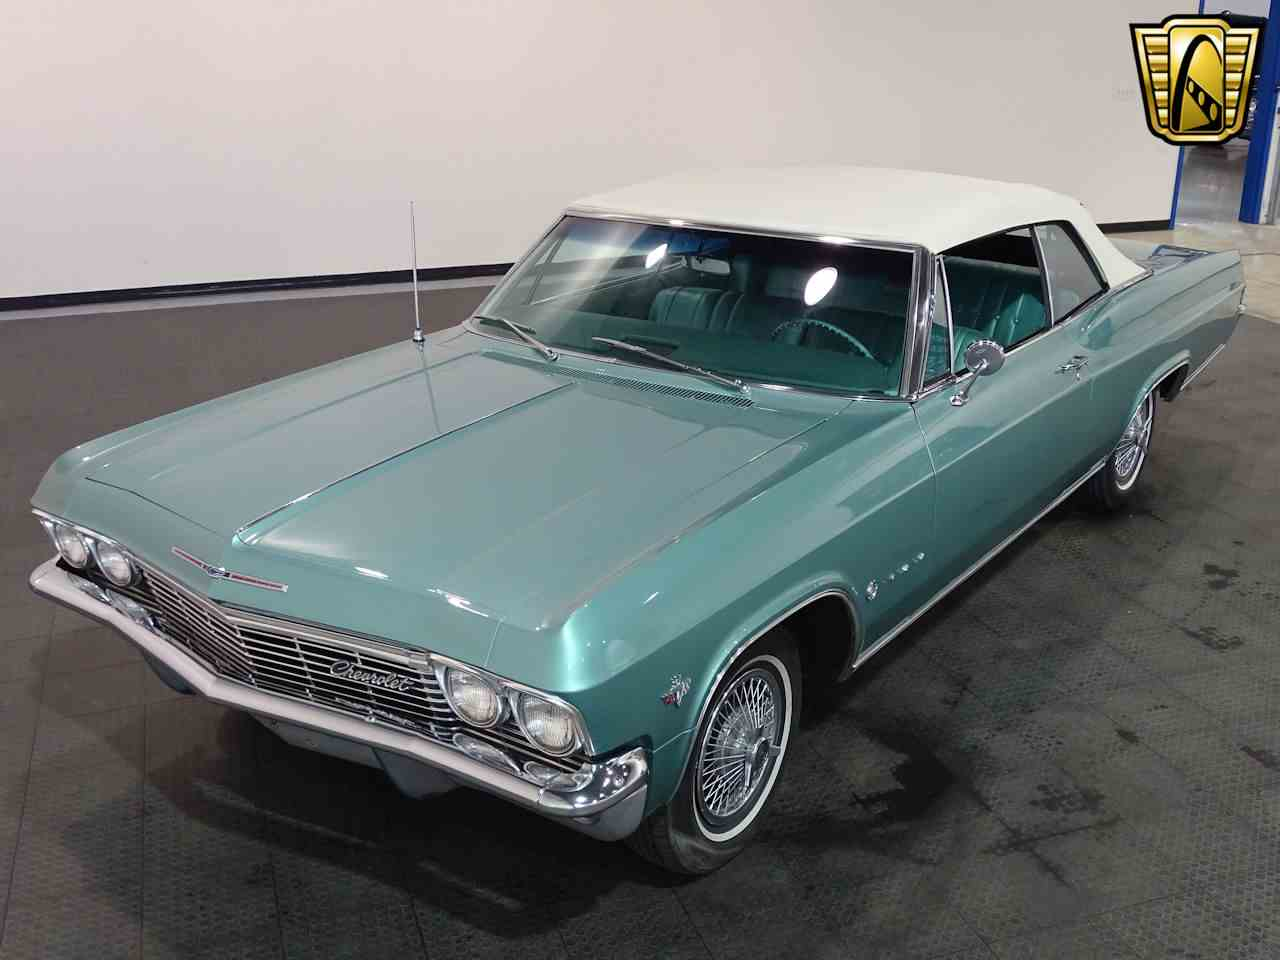 Large Picture of 1965 Chevrolet Impala located in Indianapolis Indiana - $34,995.00 - L5YV